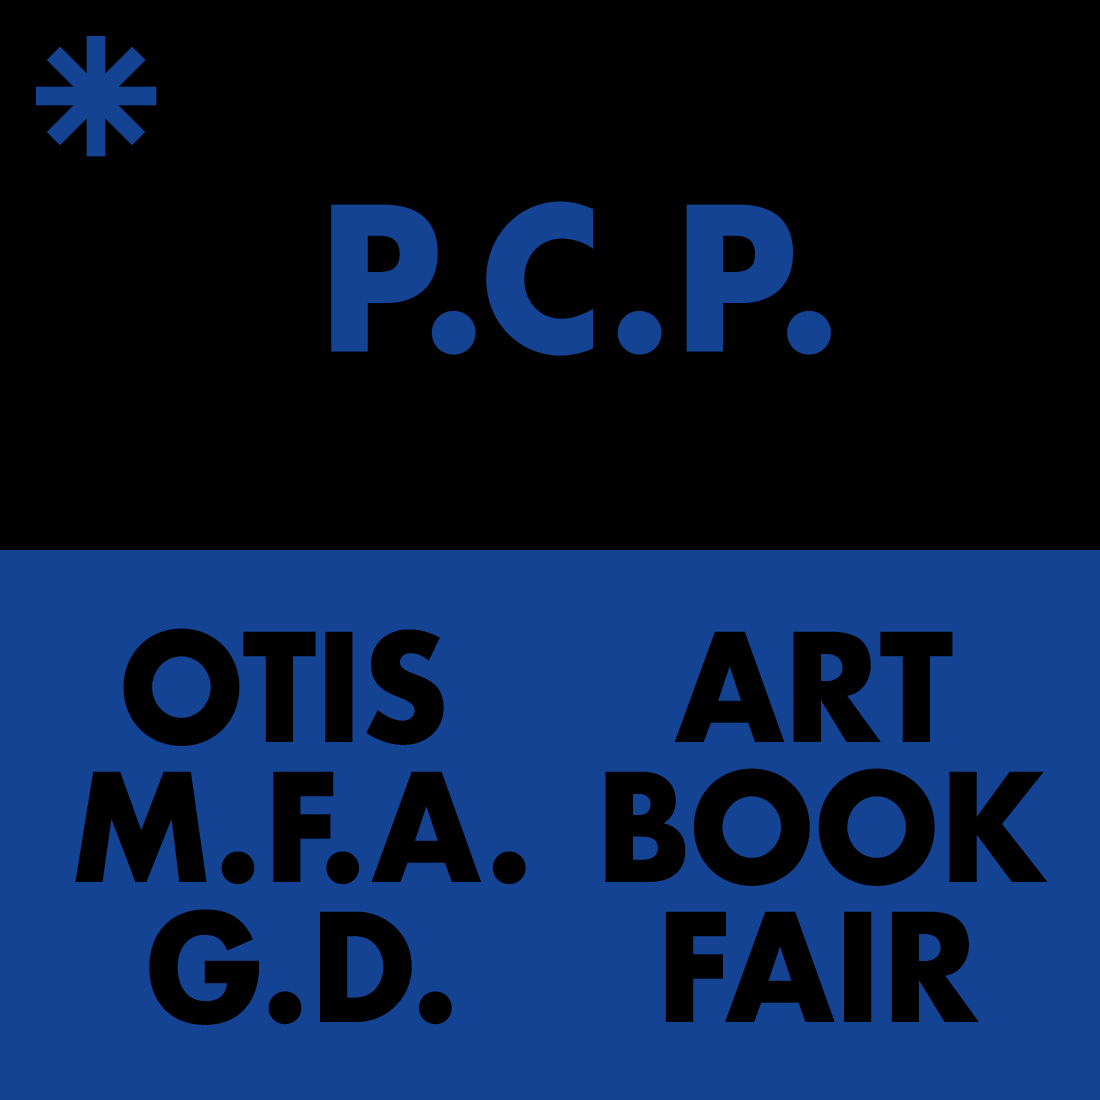 PCP at Otis MFAGD Art Book Fair.